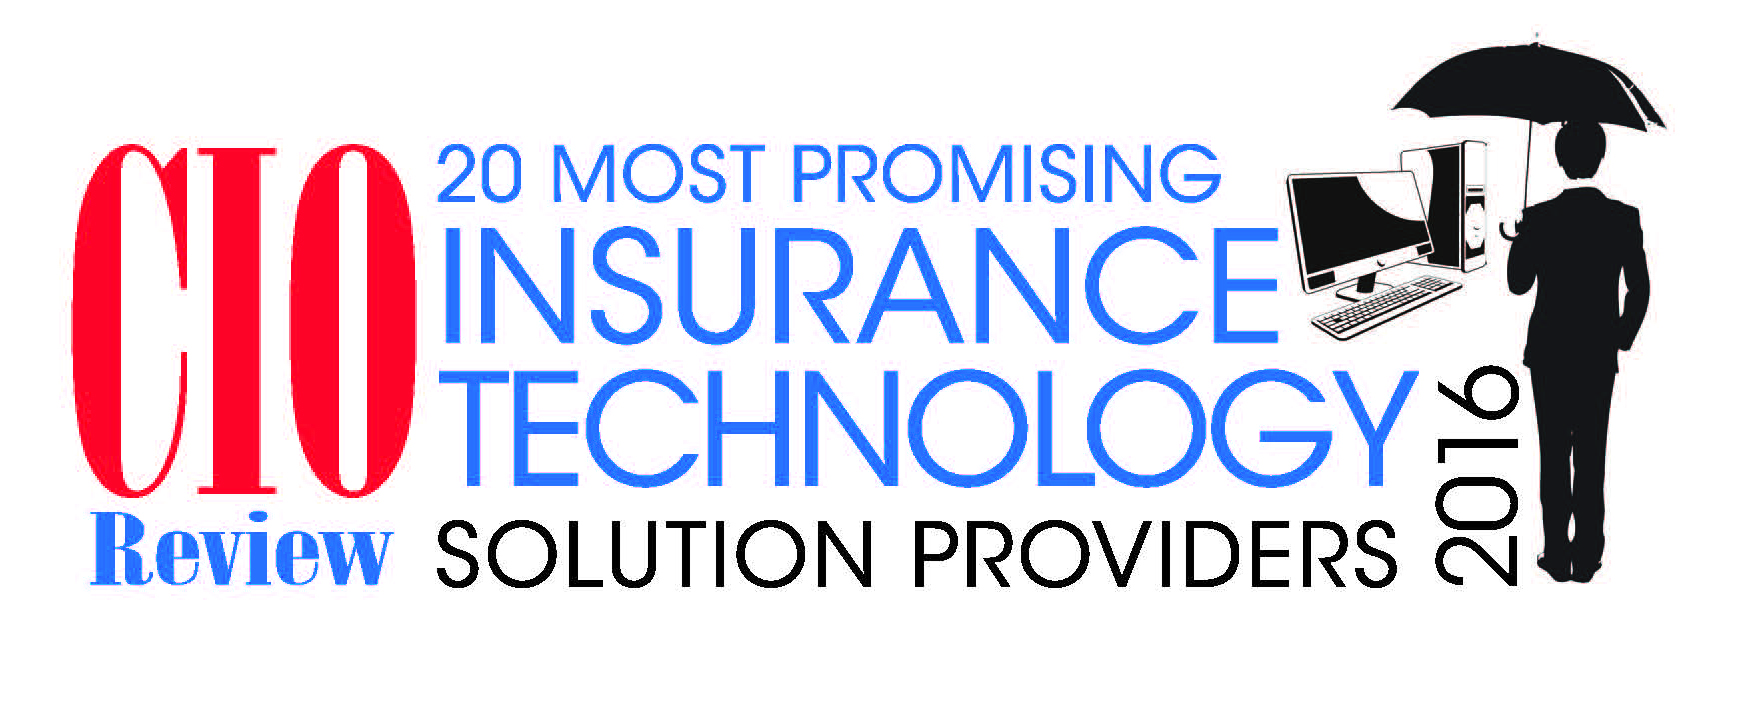 20 Most Promising Insurance Solutions Provider